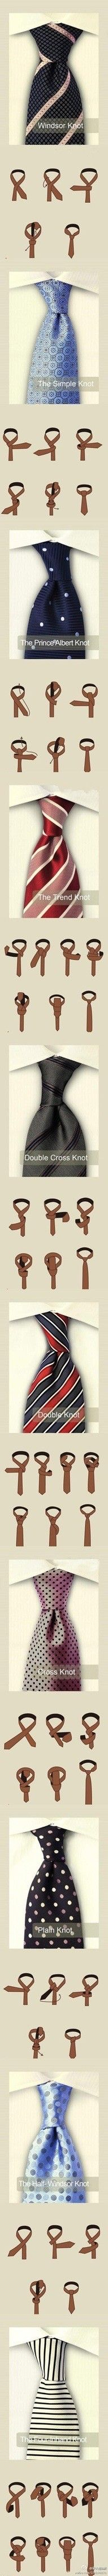 Different ways on how to tie a tie